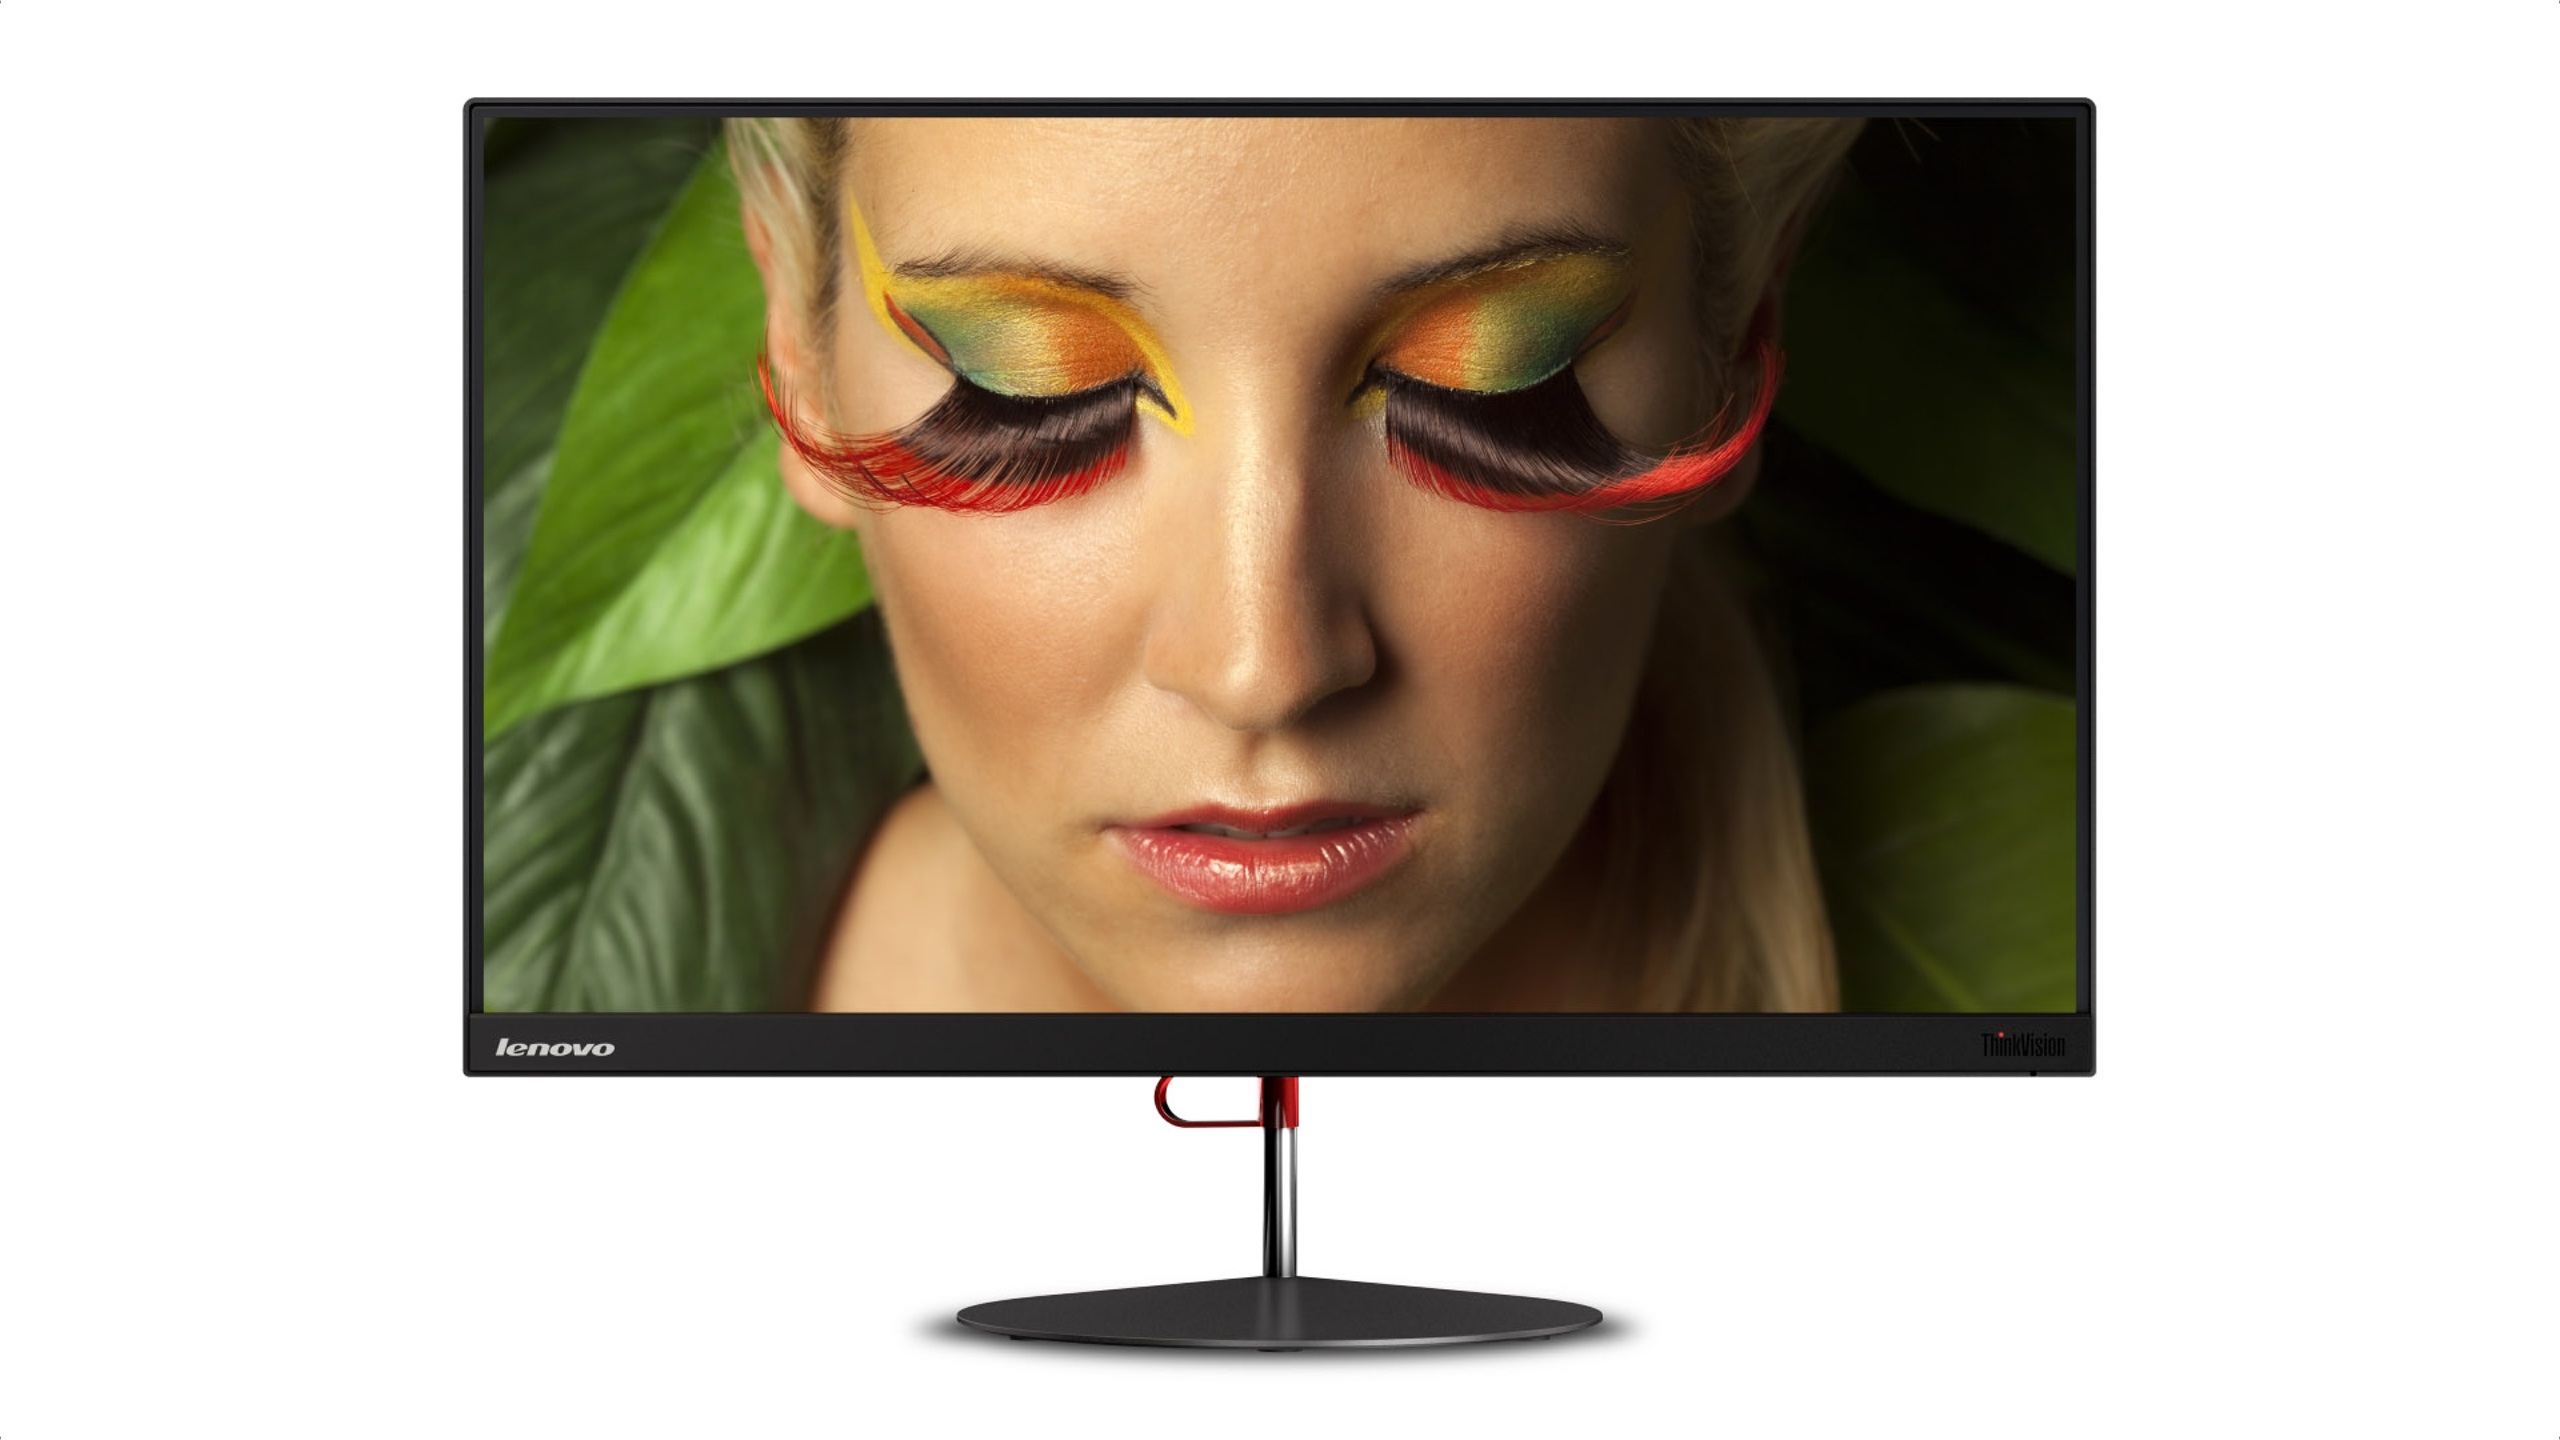 lenovo-thinkvision-x24-display